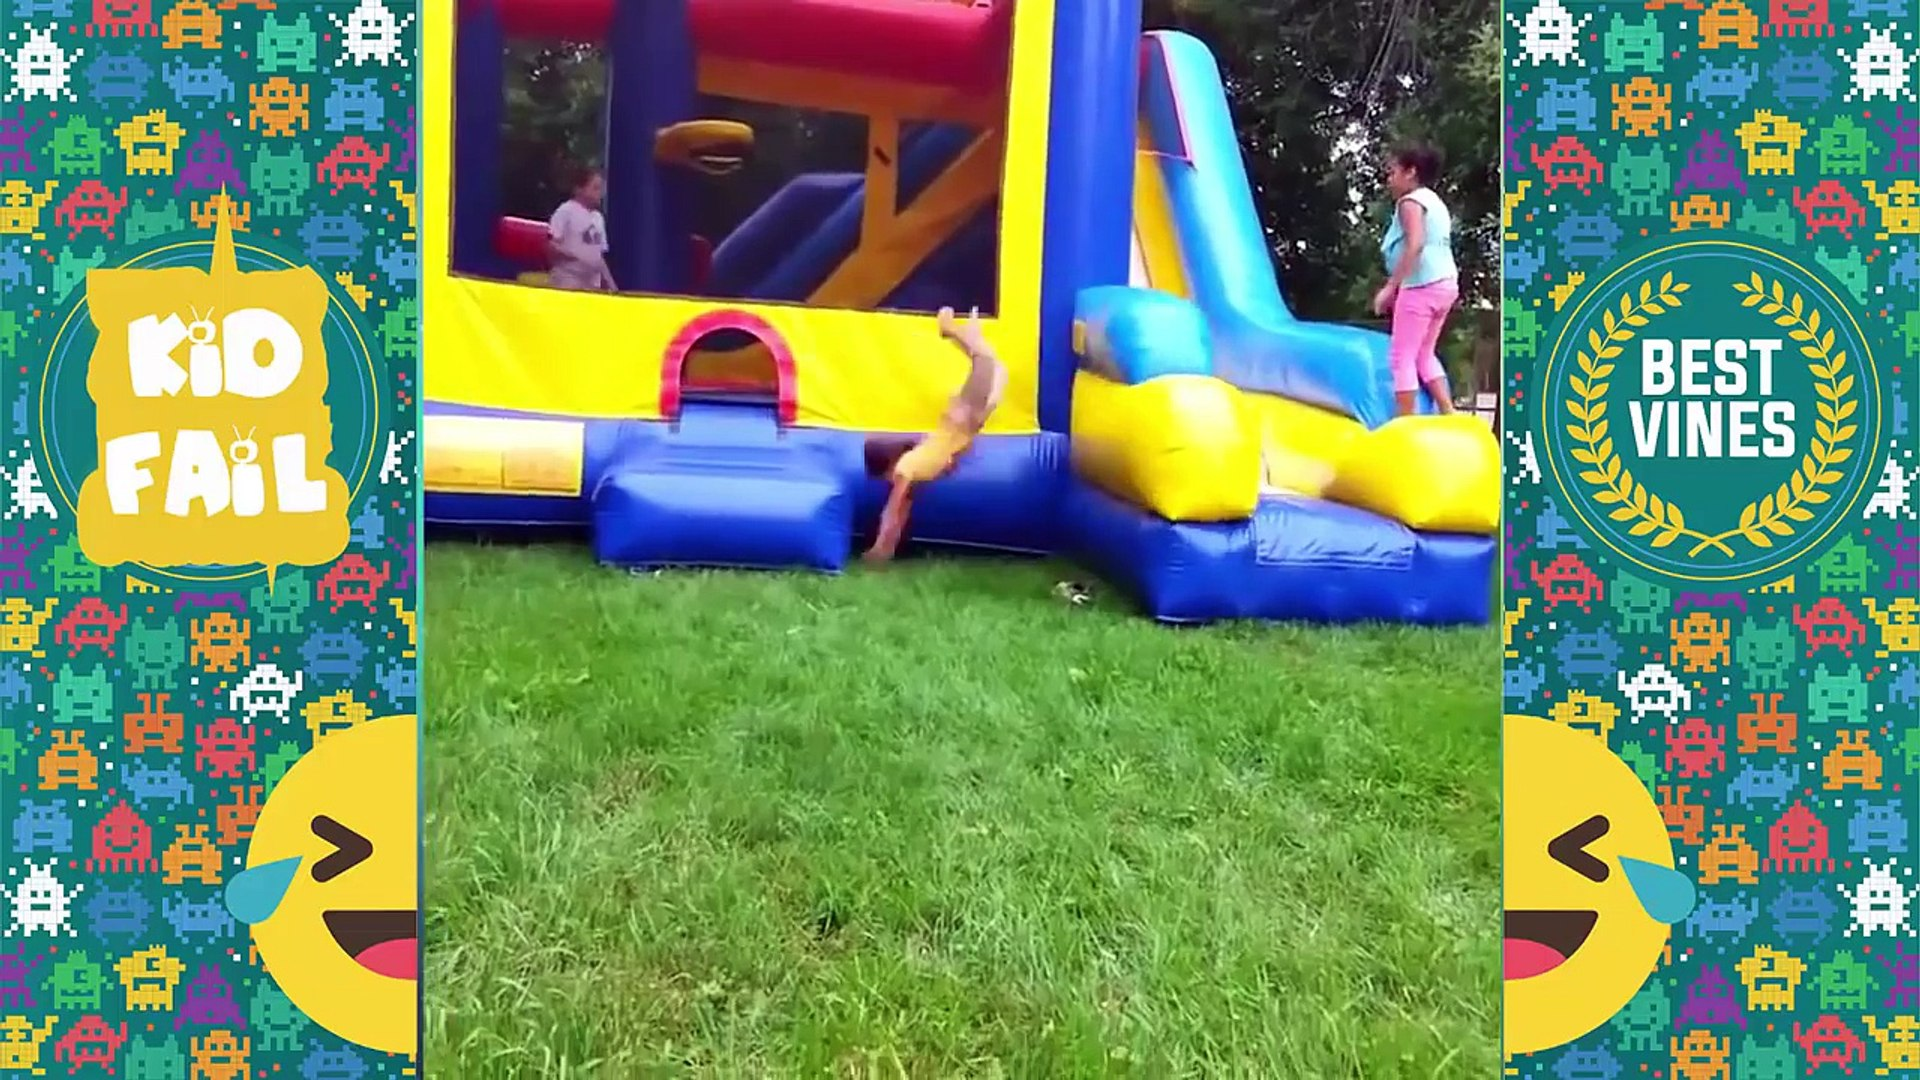 FUNNY KIDS - BEST KIDS FAILS  _ FUNNY KIDS FAILS TRY NOT TO LAUGH OR GRIN COMPILATION #03-2K1dXF3ZTK